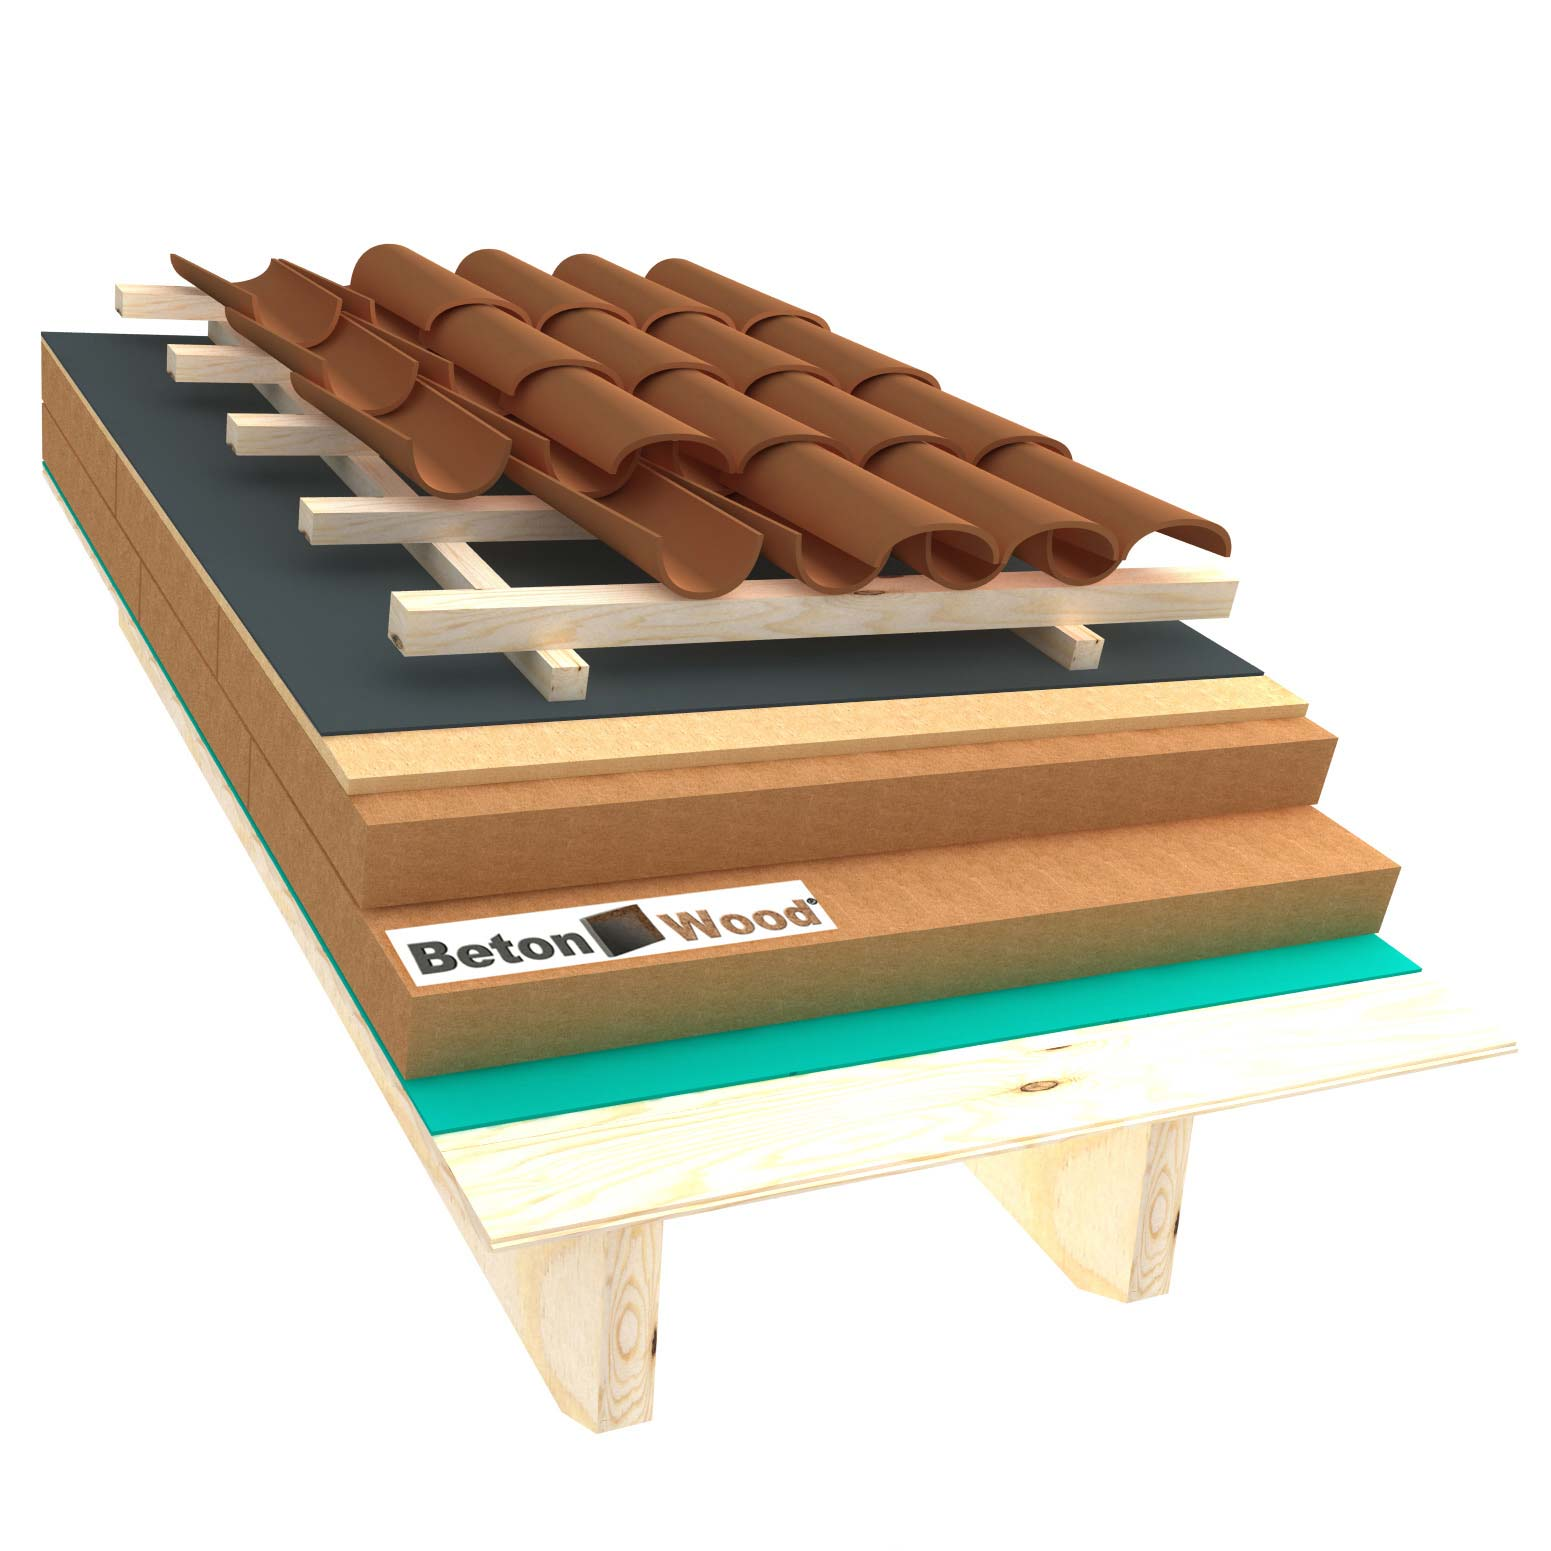 Ventilated roof with wood fiber Isorel and Therm on matchboarding